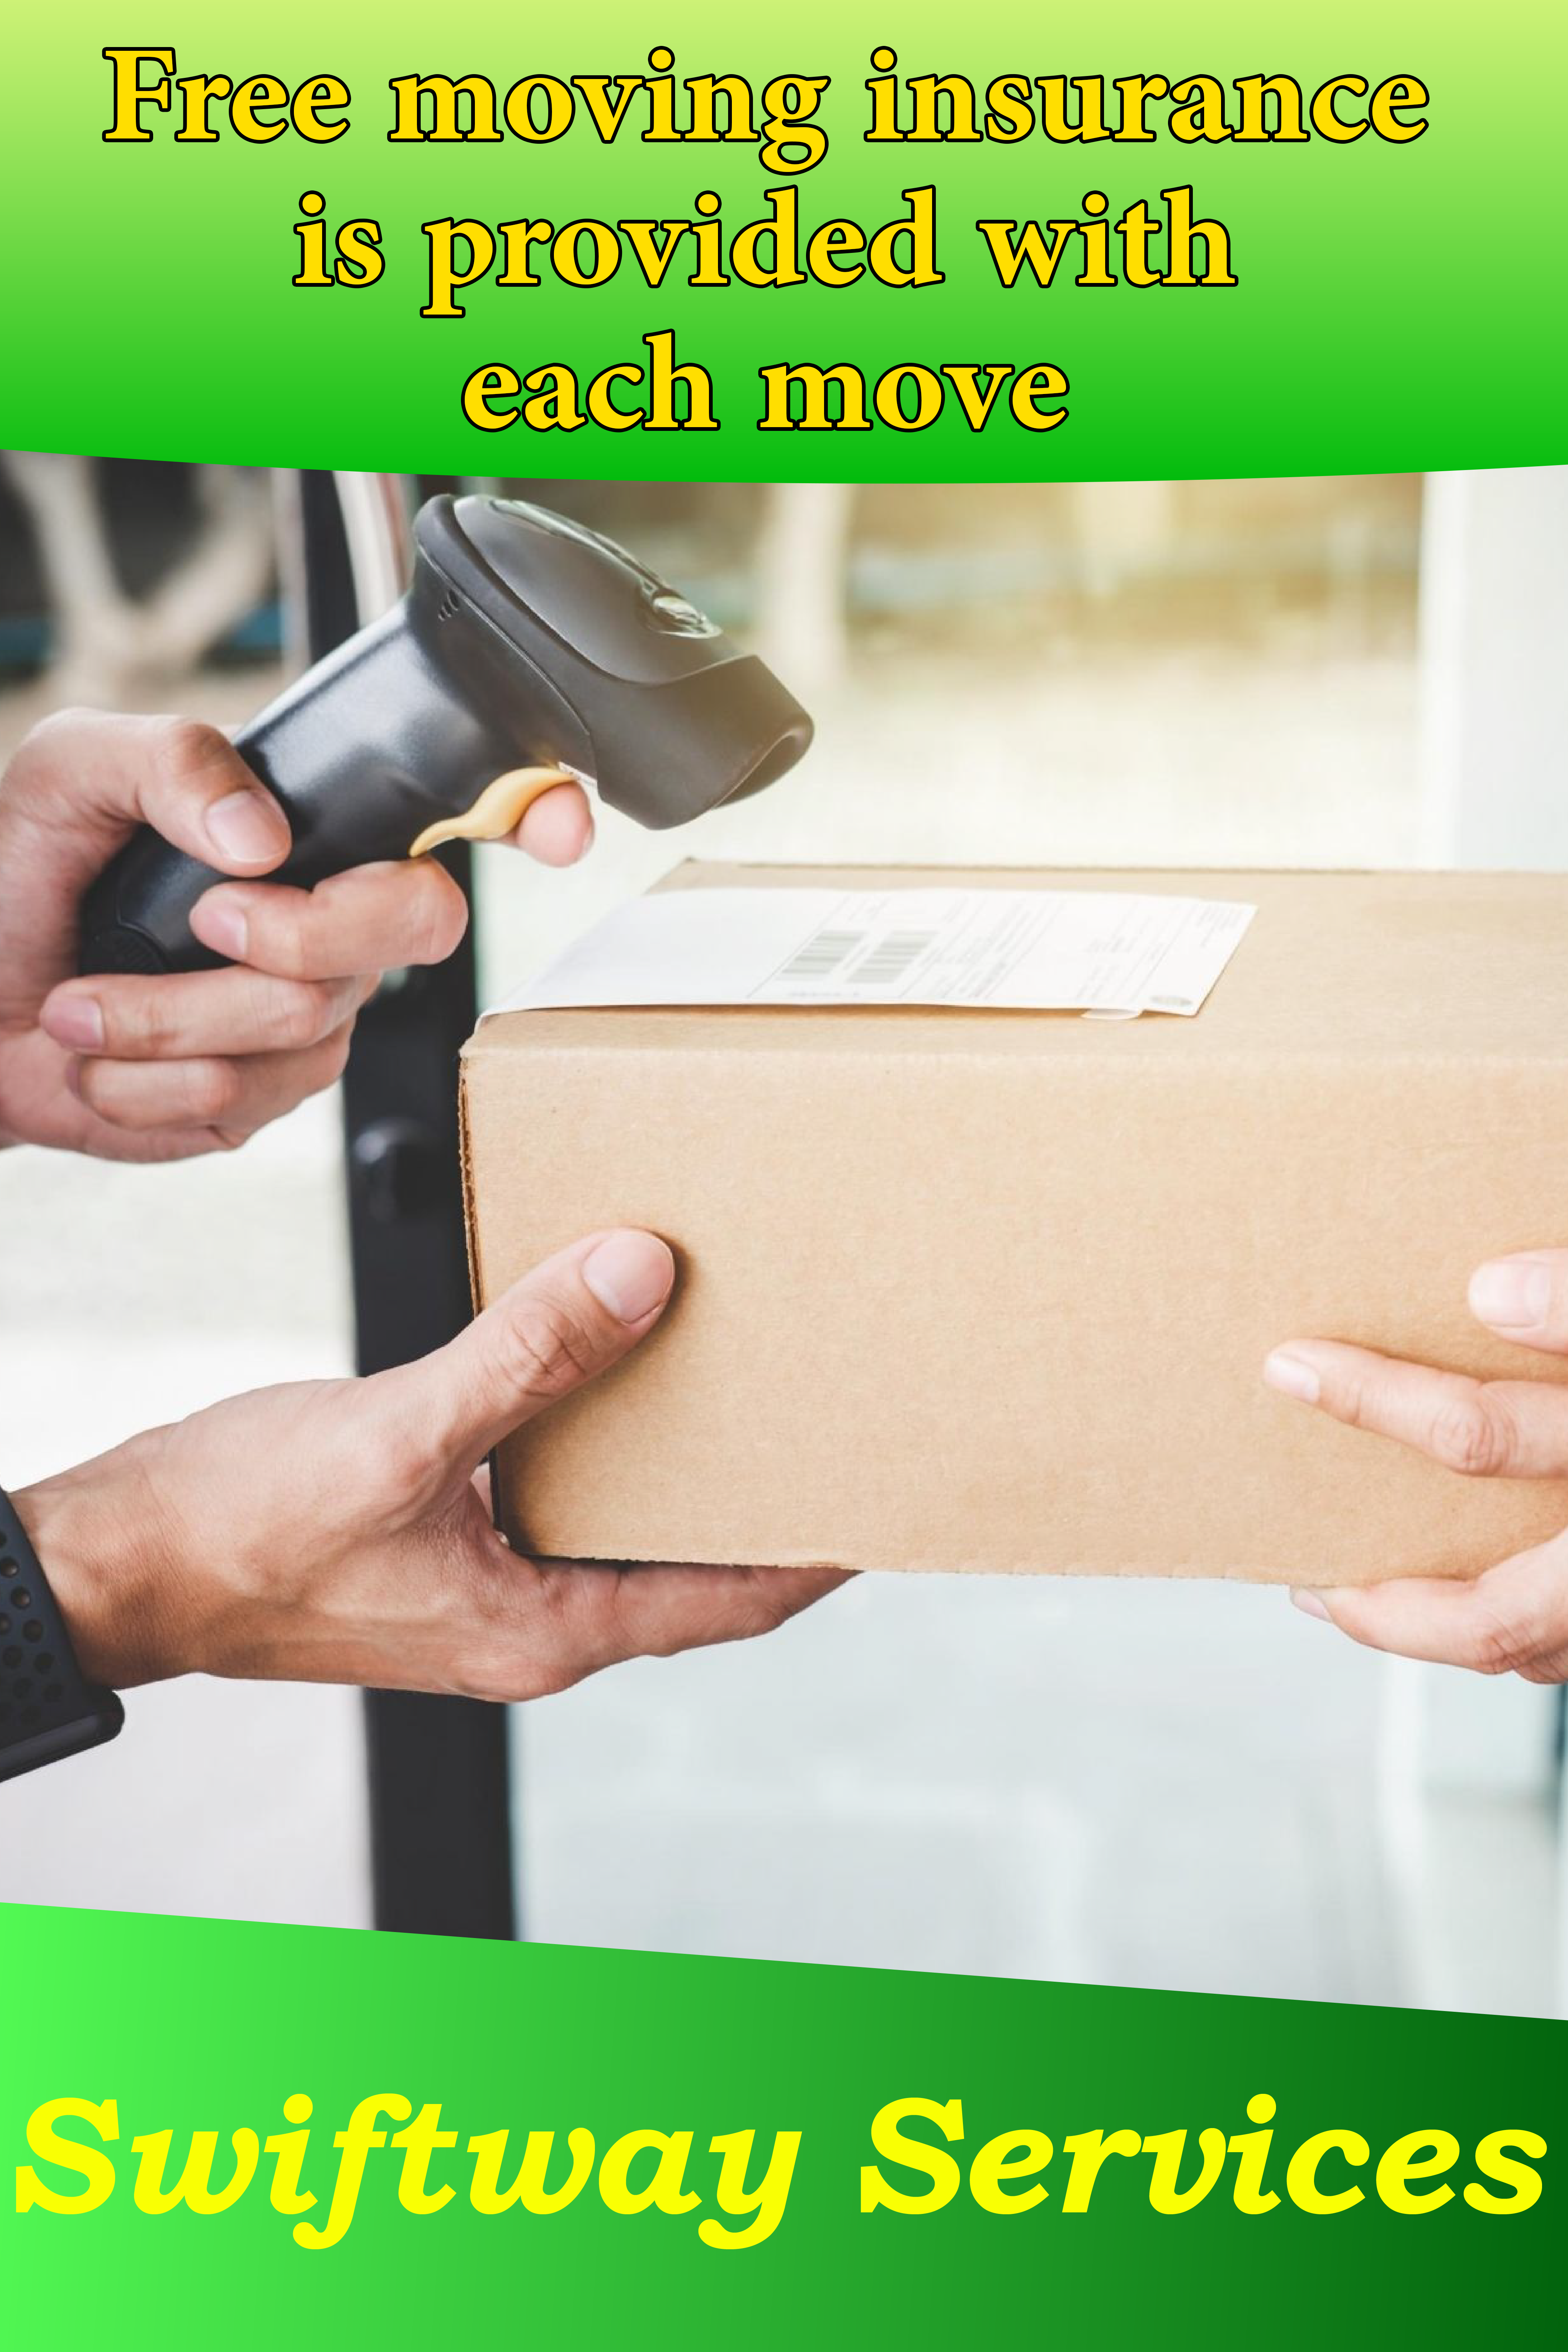 Swiftway Services in 2020 Moving company, Best moving